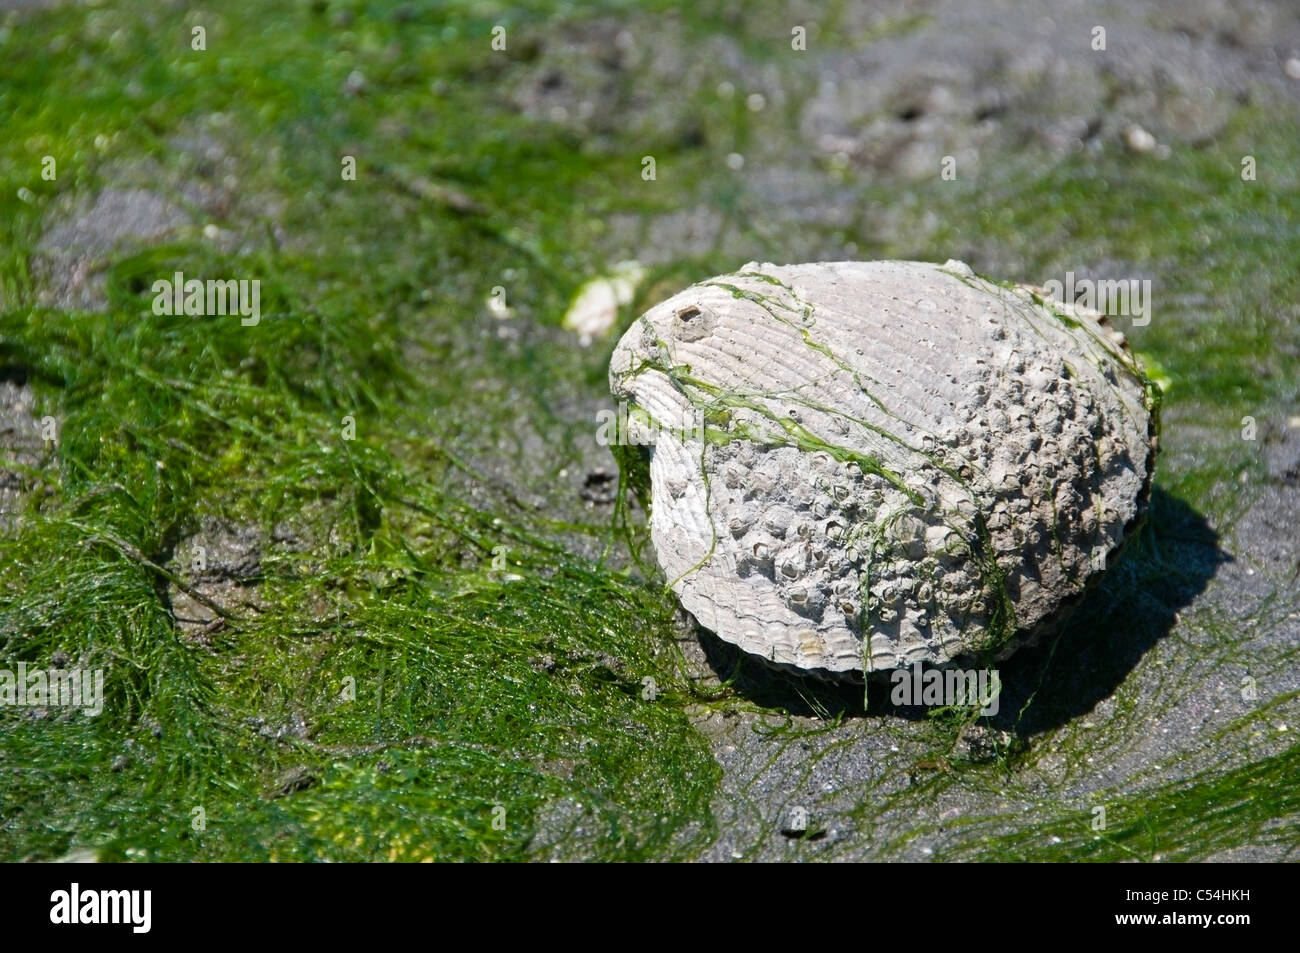 Exposed closed bivalve mollusk at low tide in the sand surrounded by seaweed in Olympia, Washington. - Stock Image